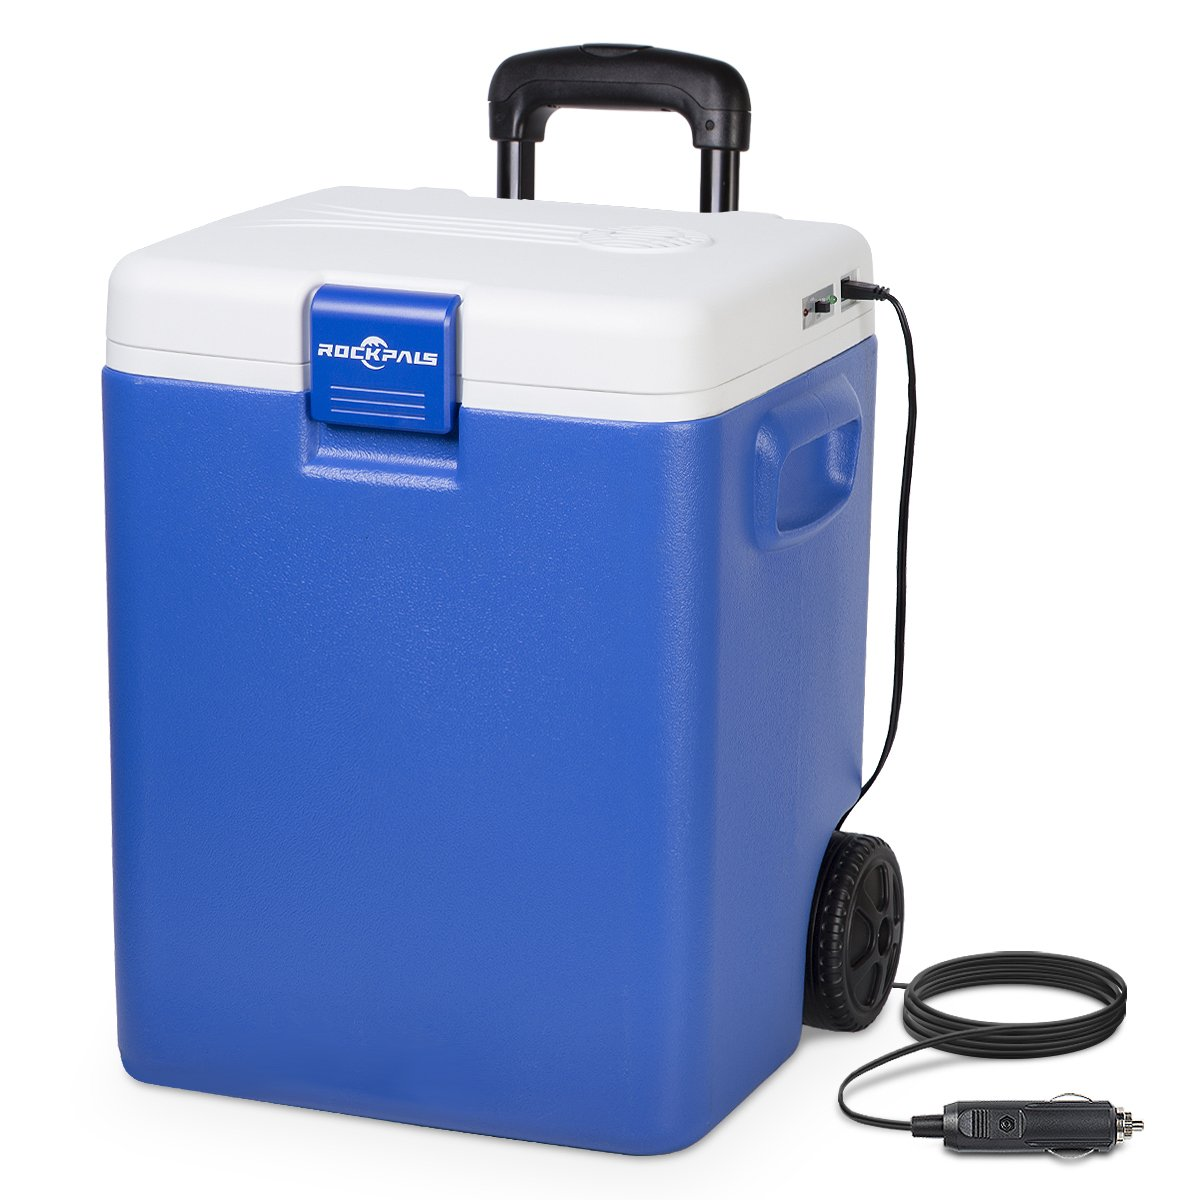 Rockpals 30 Quart Electric Cooler/Warmer On Wheels and Handle, Portable Thermoelectric Plug In Cooler Chiller with DC 12V Plug for Truck, Car, RV, Home, Office, Travel, Camping, Beach (BLUE)